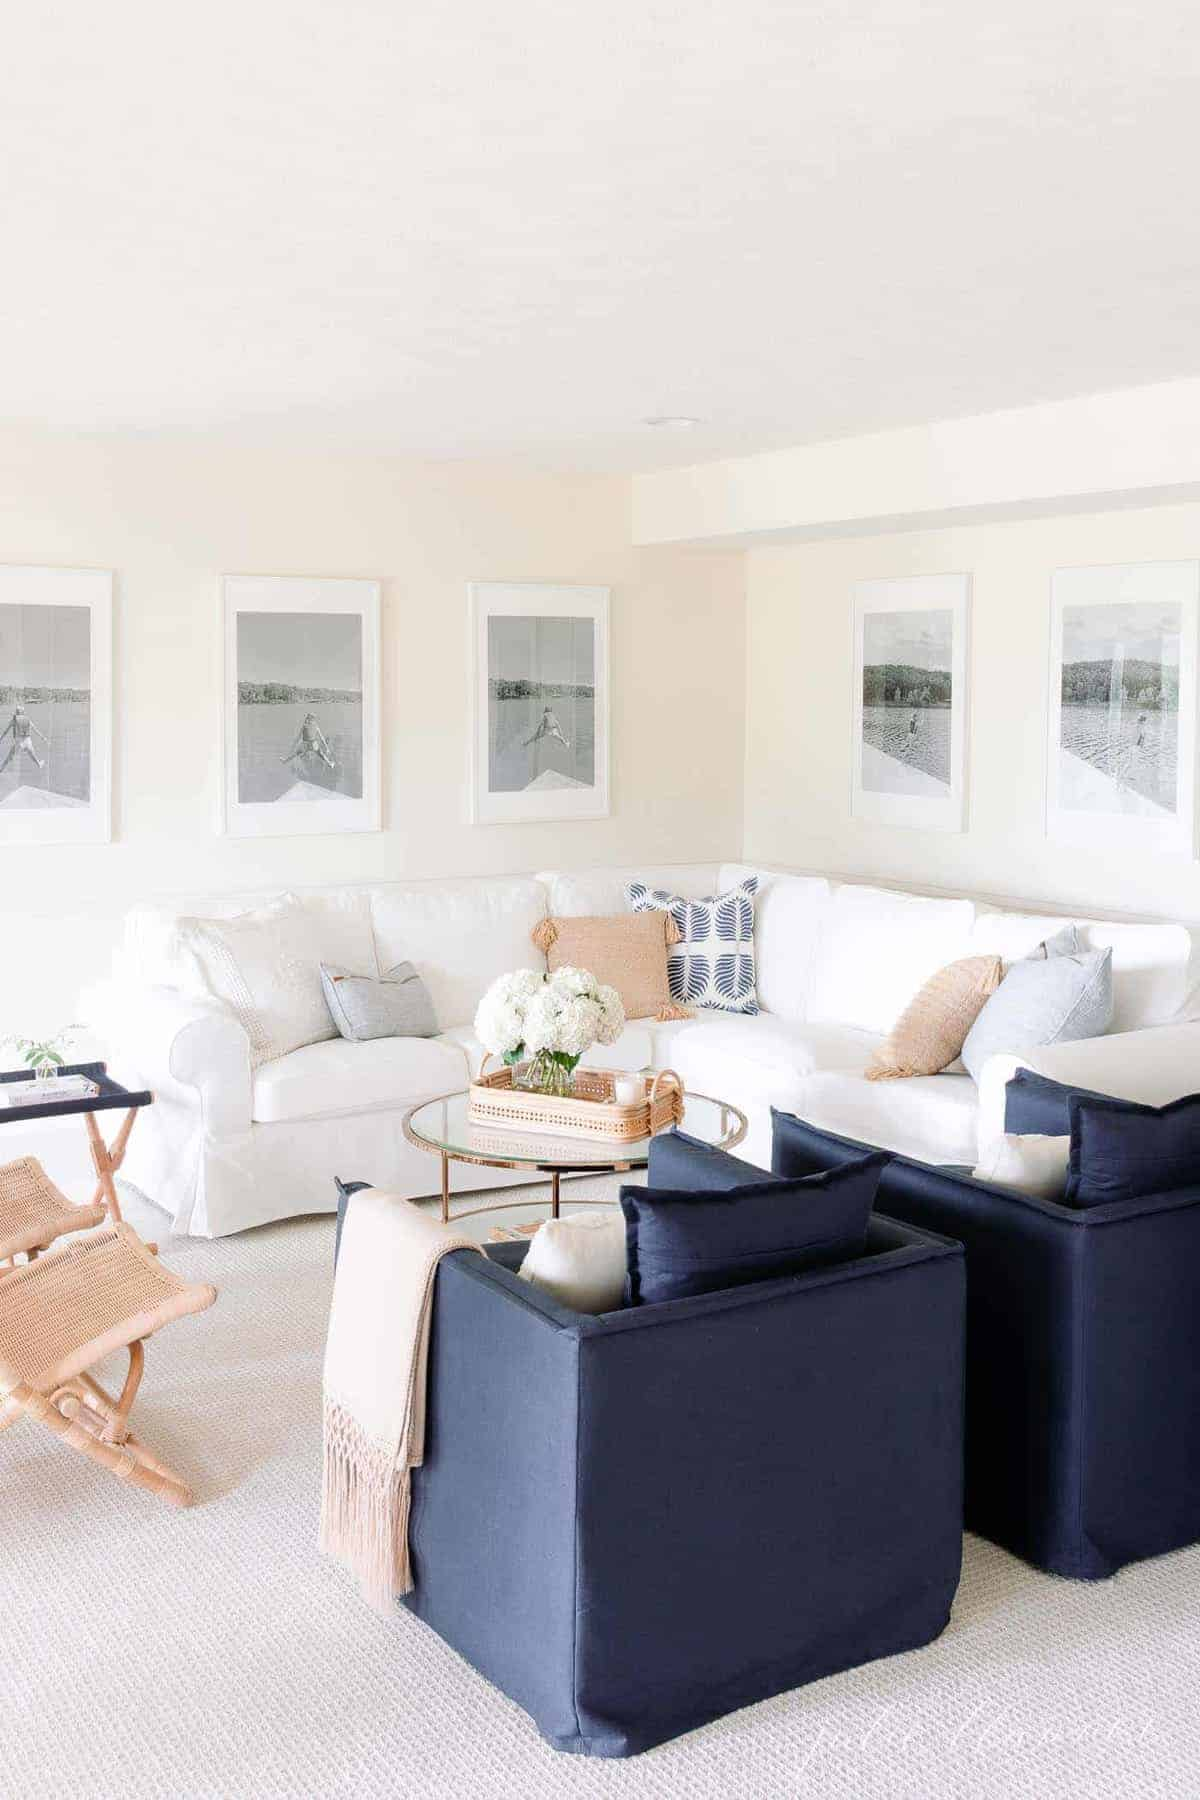 A living room with white furniture with a cream eggshell paint on the walls.